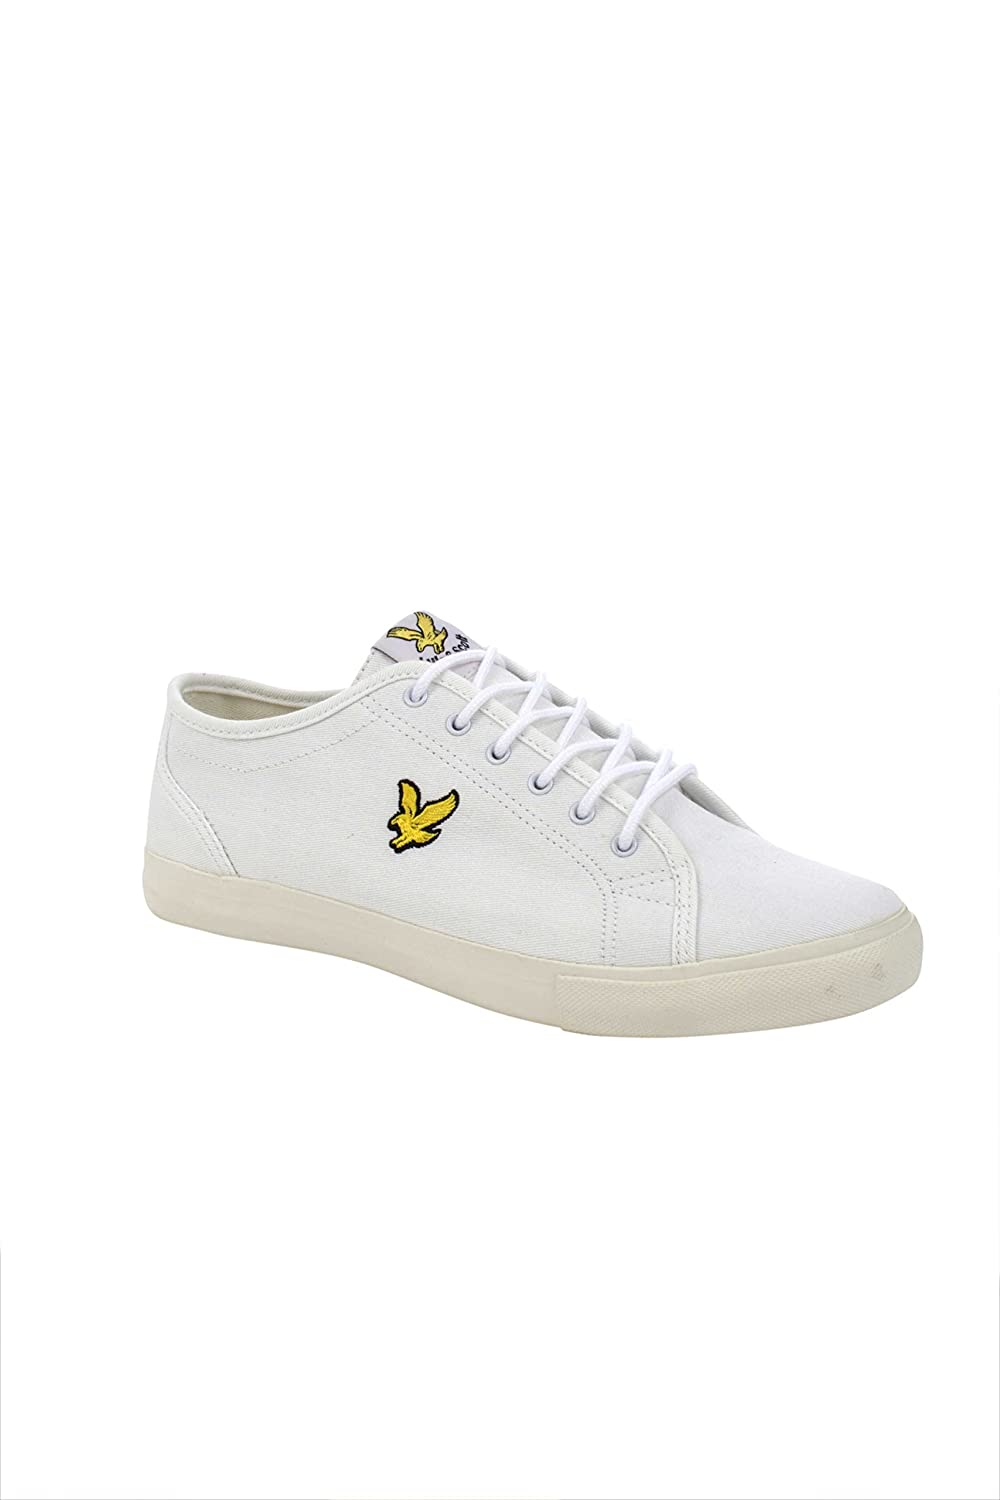 b906fcc56a2c Lyle   Scott Teviot Twill Canvas Plimsoll White (12)  Amazon.co.uk  Shoes    Bags